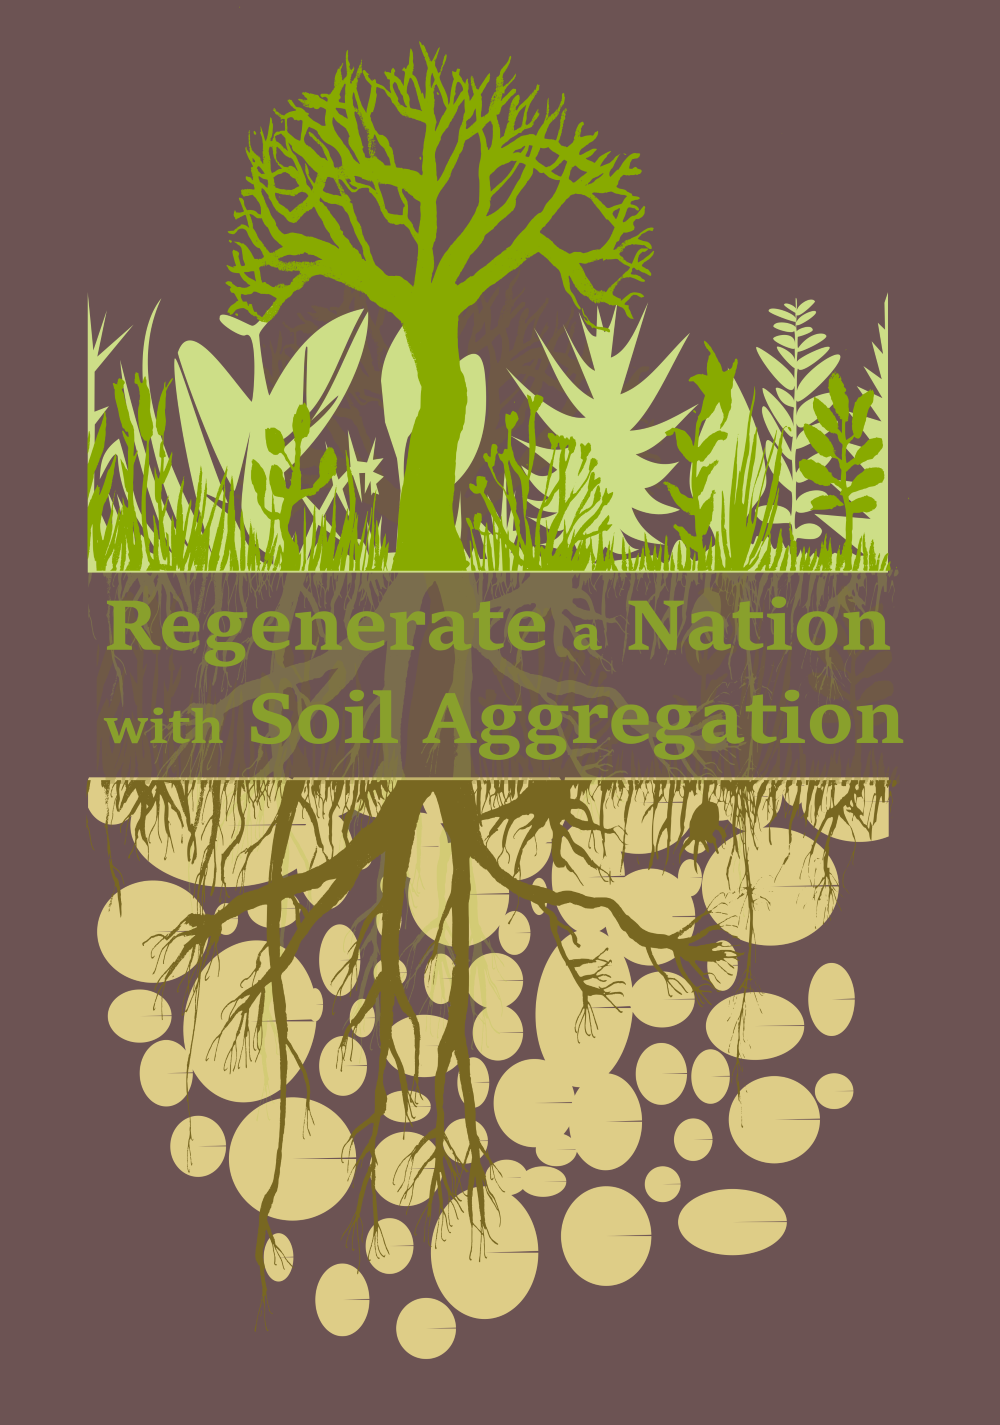 My soil health design printed on clothing, decor items and accessories.